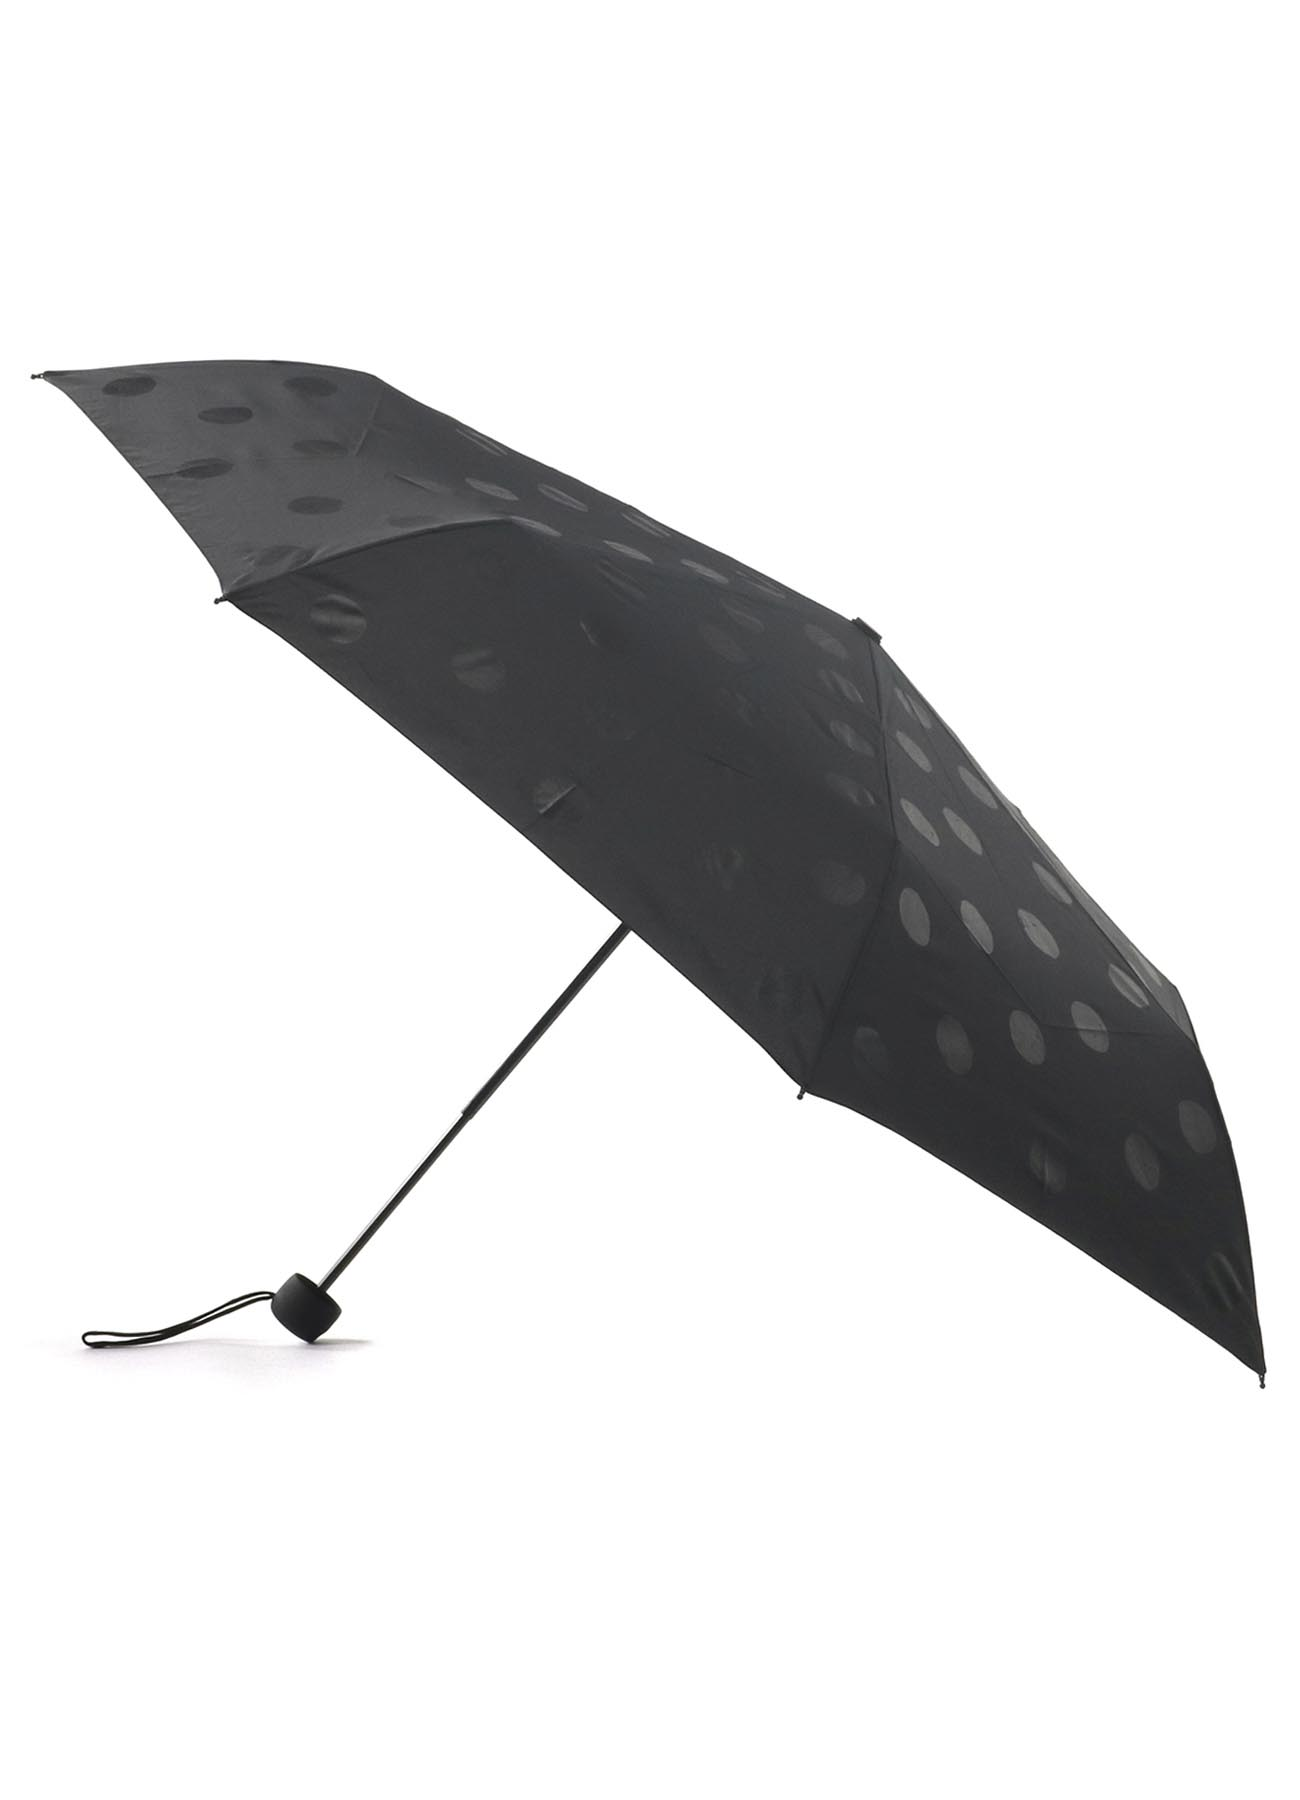 DOT WATER PROOF NYLON Y's FOLDING UMBRELLA